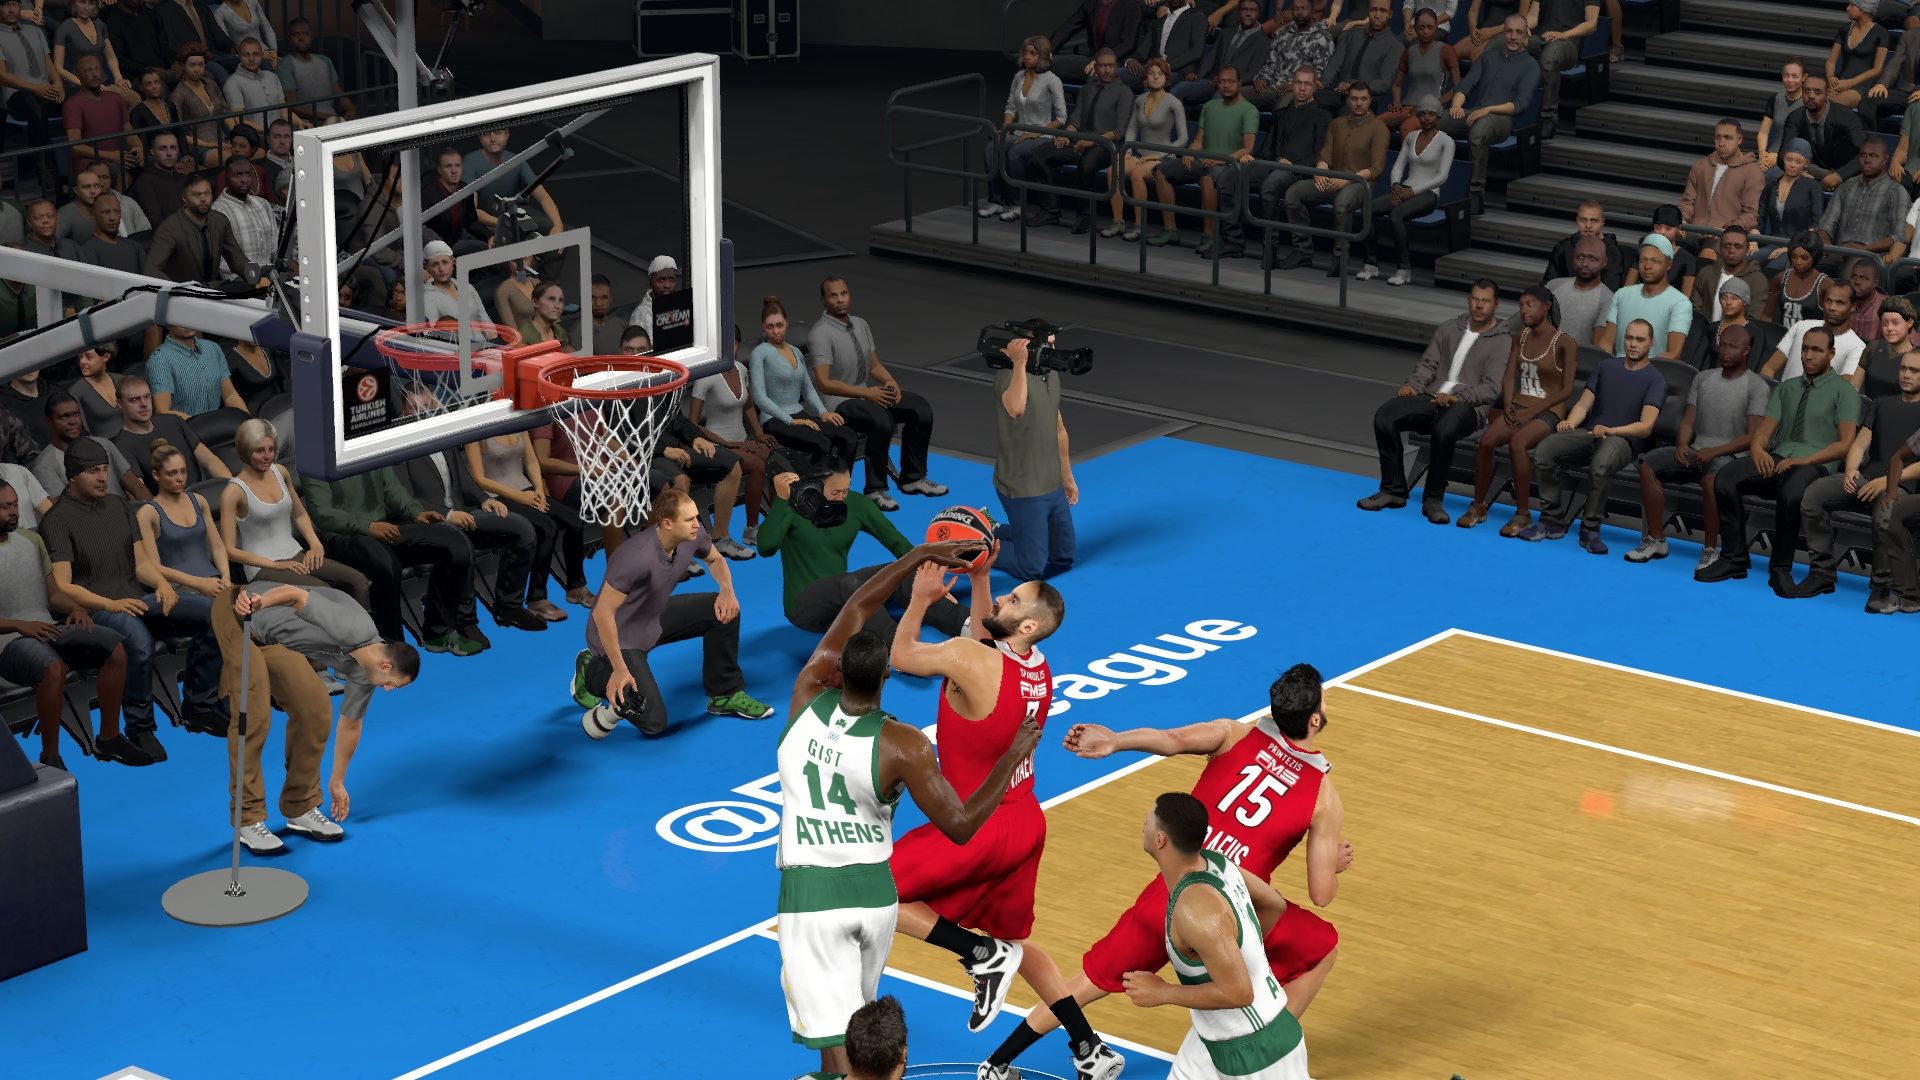 nba 2k18 euroleague